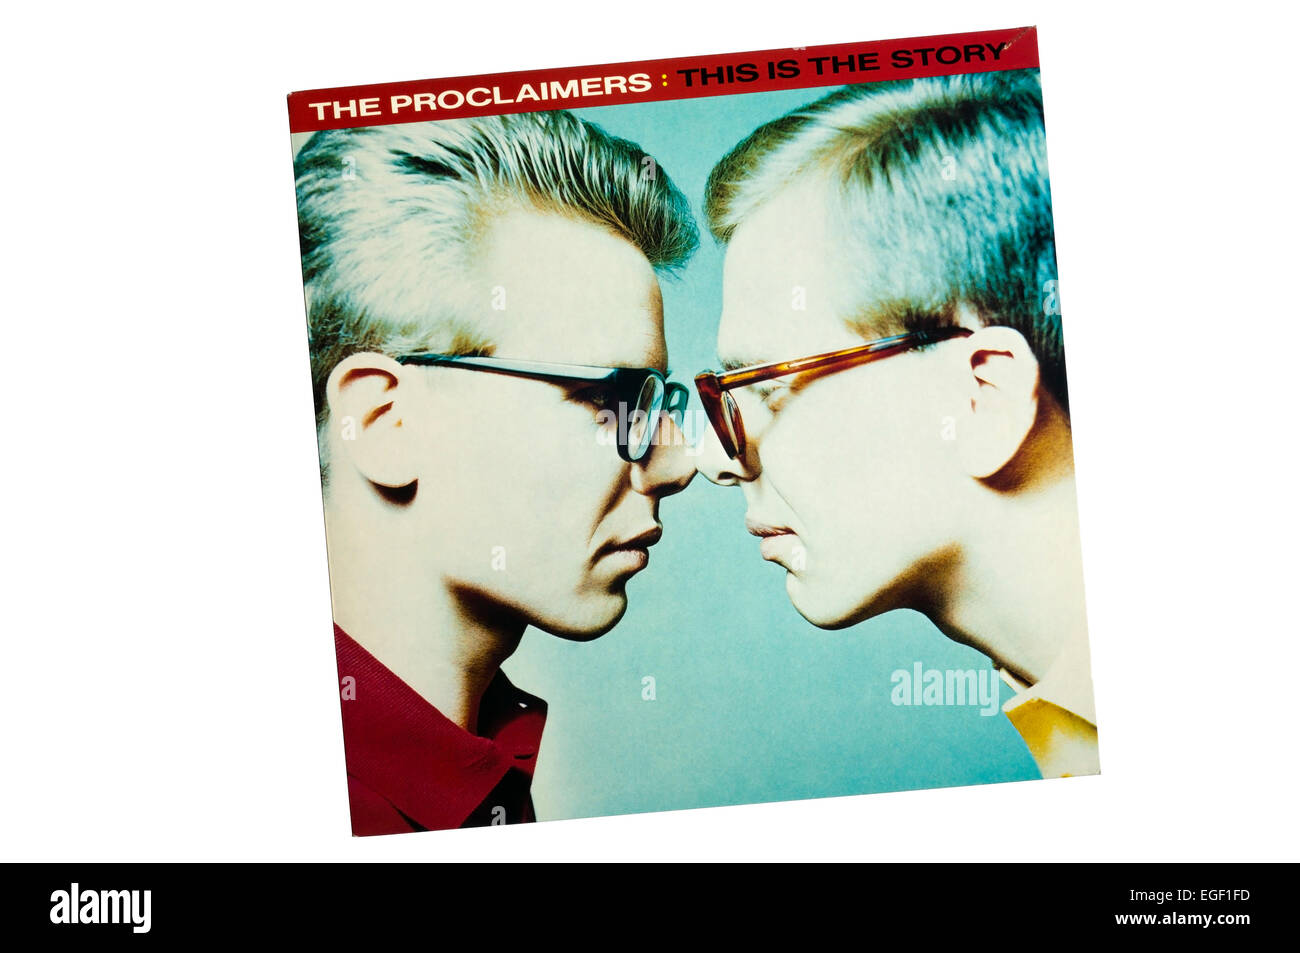 This Is the Story was the first album of The Proclaimers, released in 1987. - Stock Image